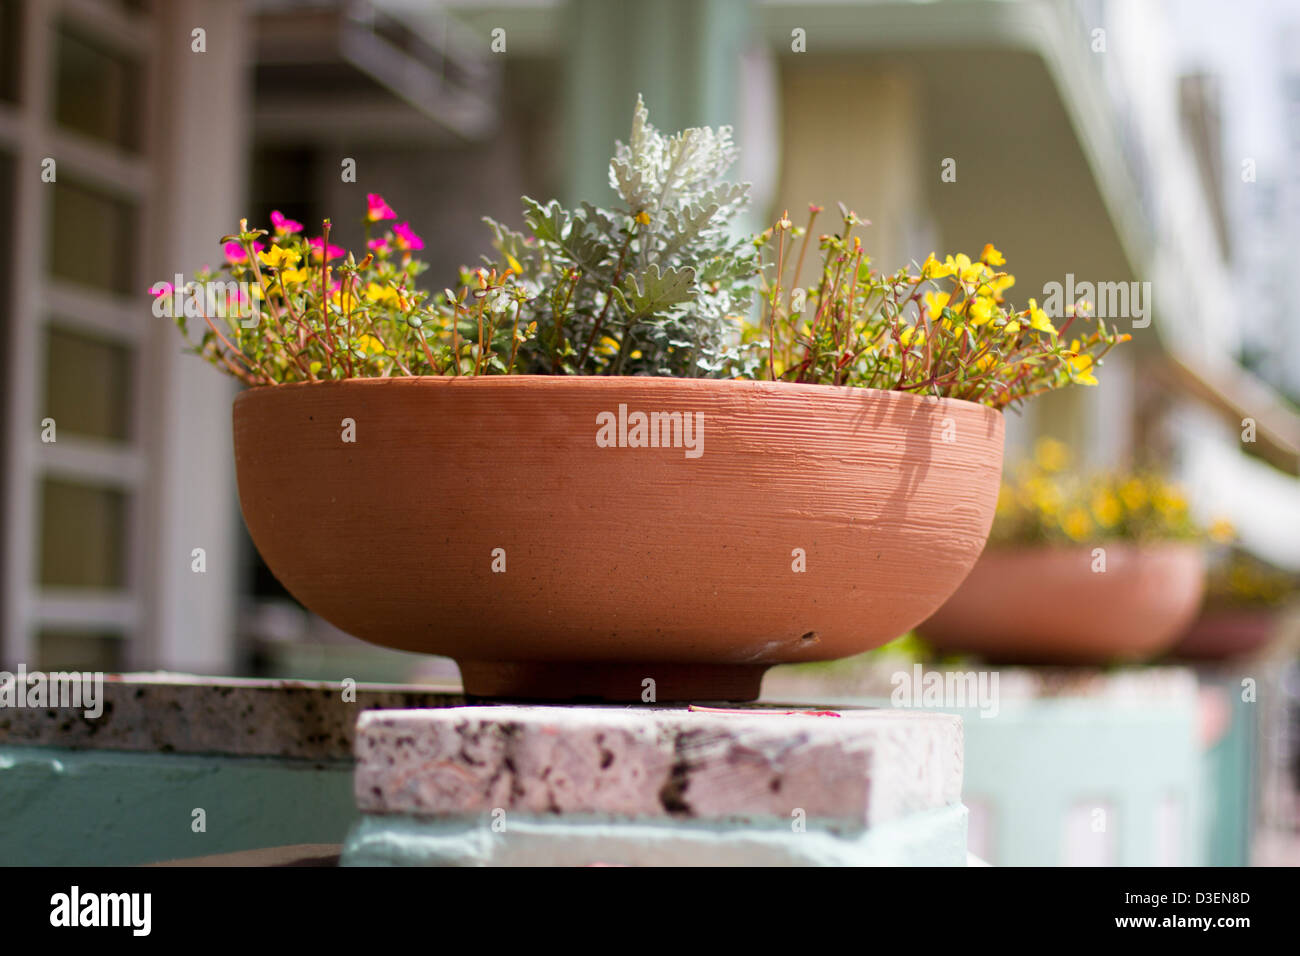 Potted plants on front porch - Stock Image